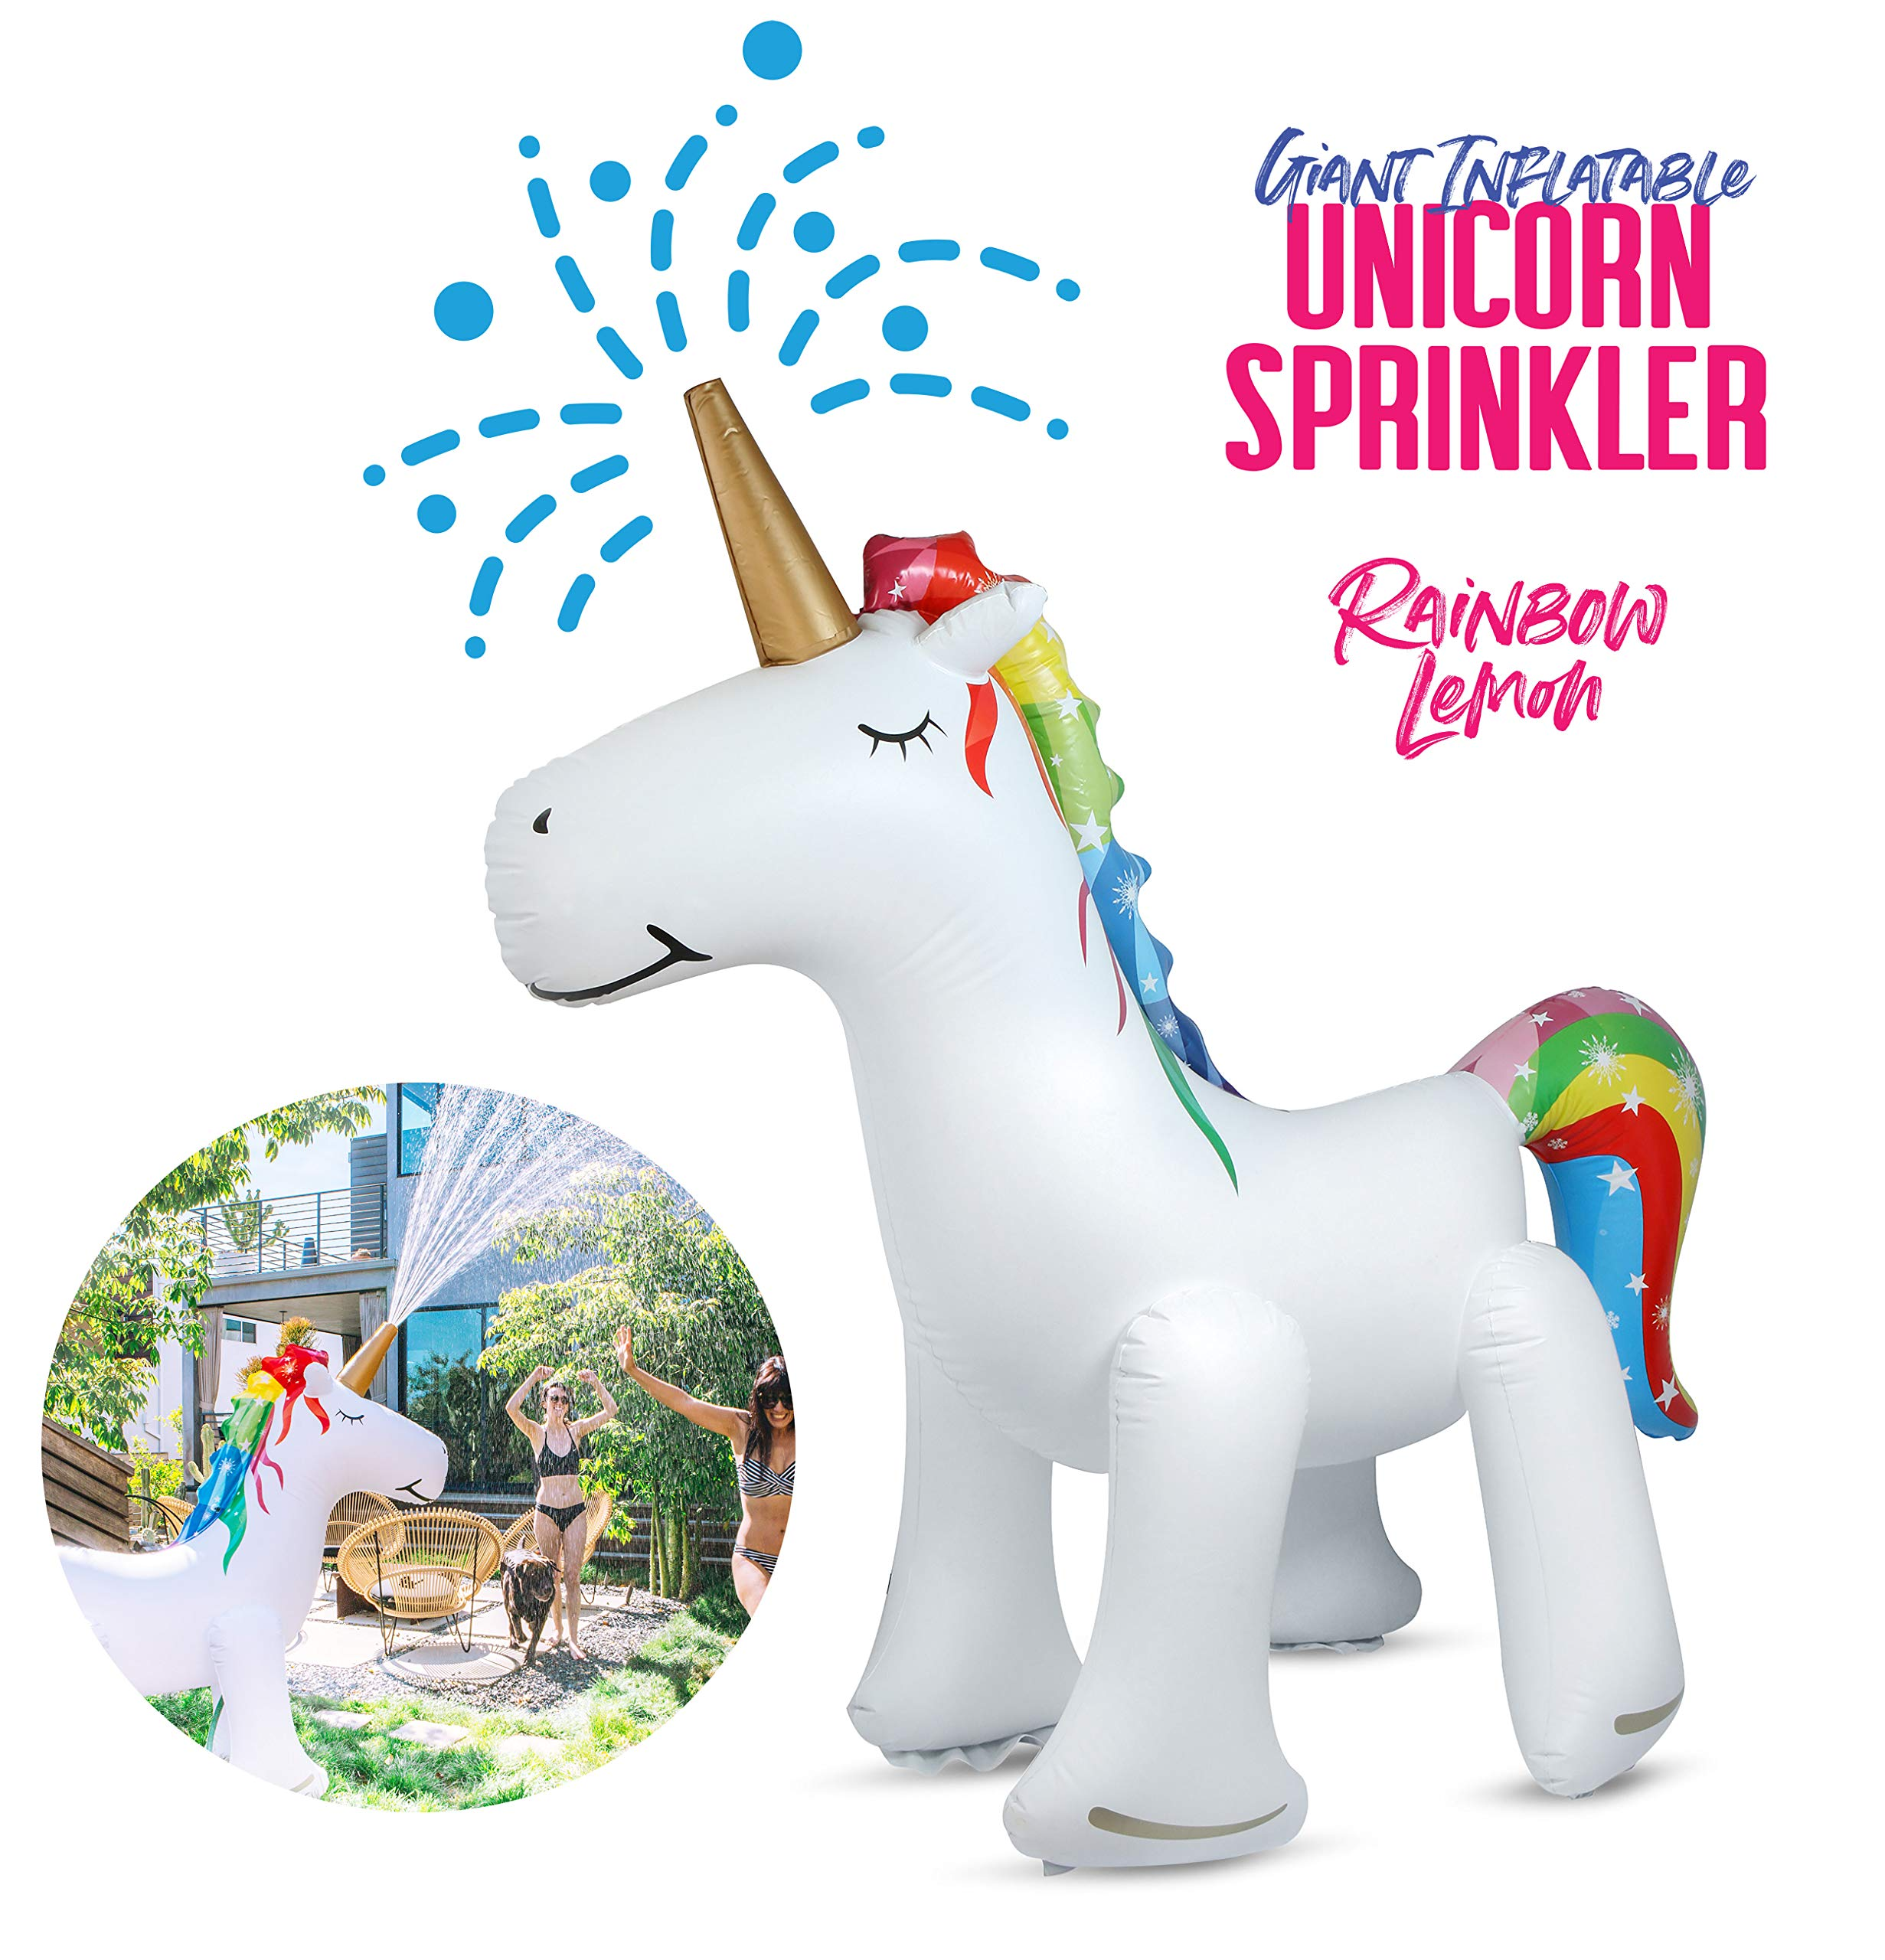 Rainbow Lemon Giant Inflatable Unicorn Sprinkler by Rainbow Lemon